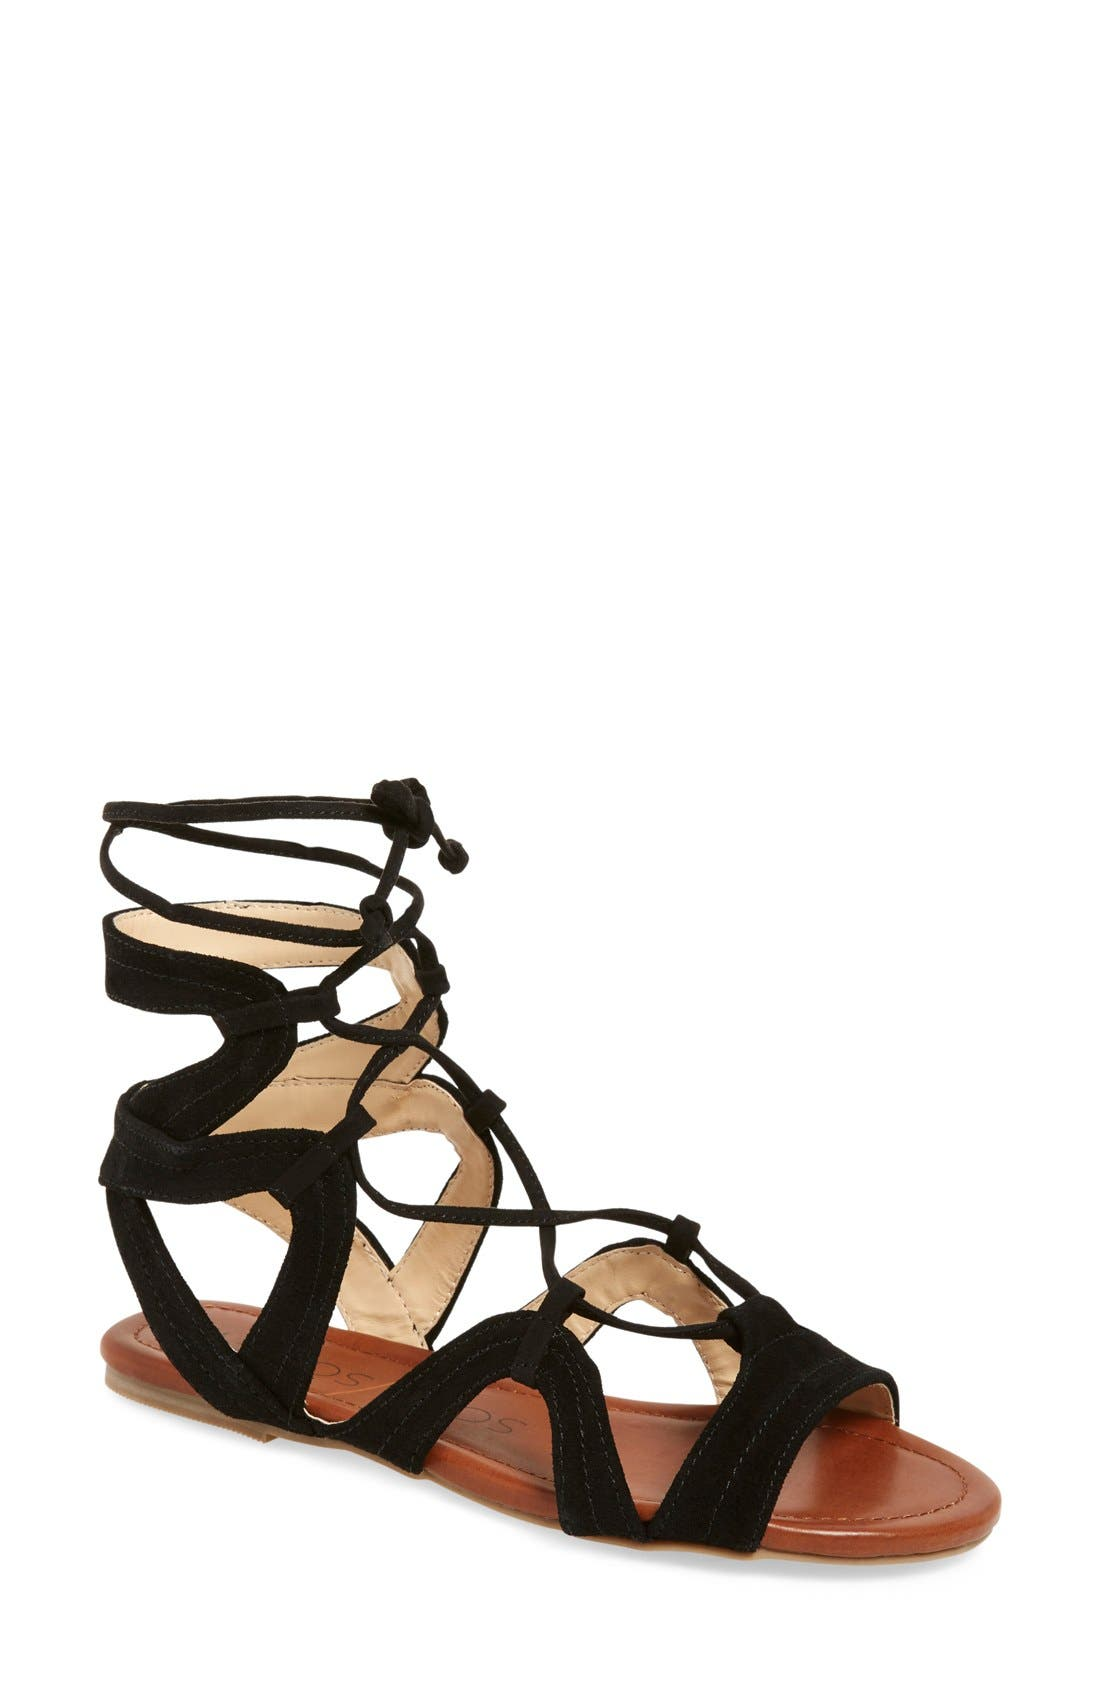 SOLE SOCIETY 'Beirut' Lace-Up Sandal, Main, color, 003